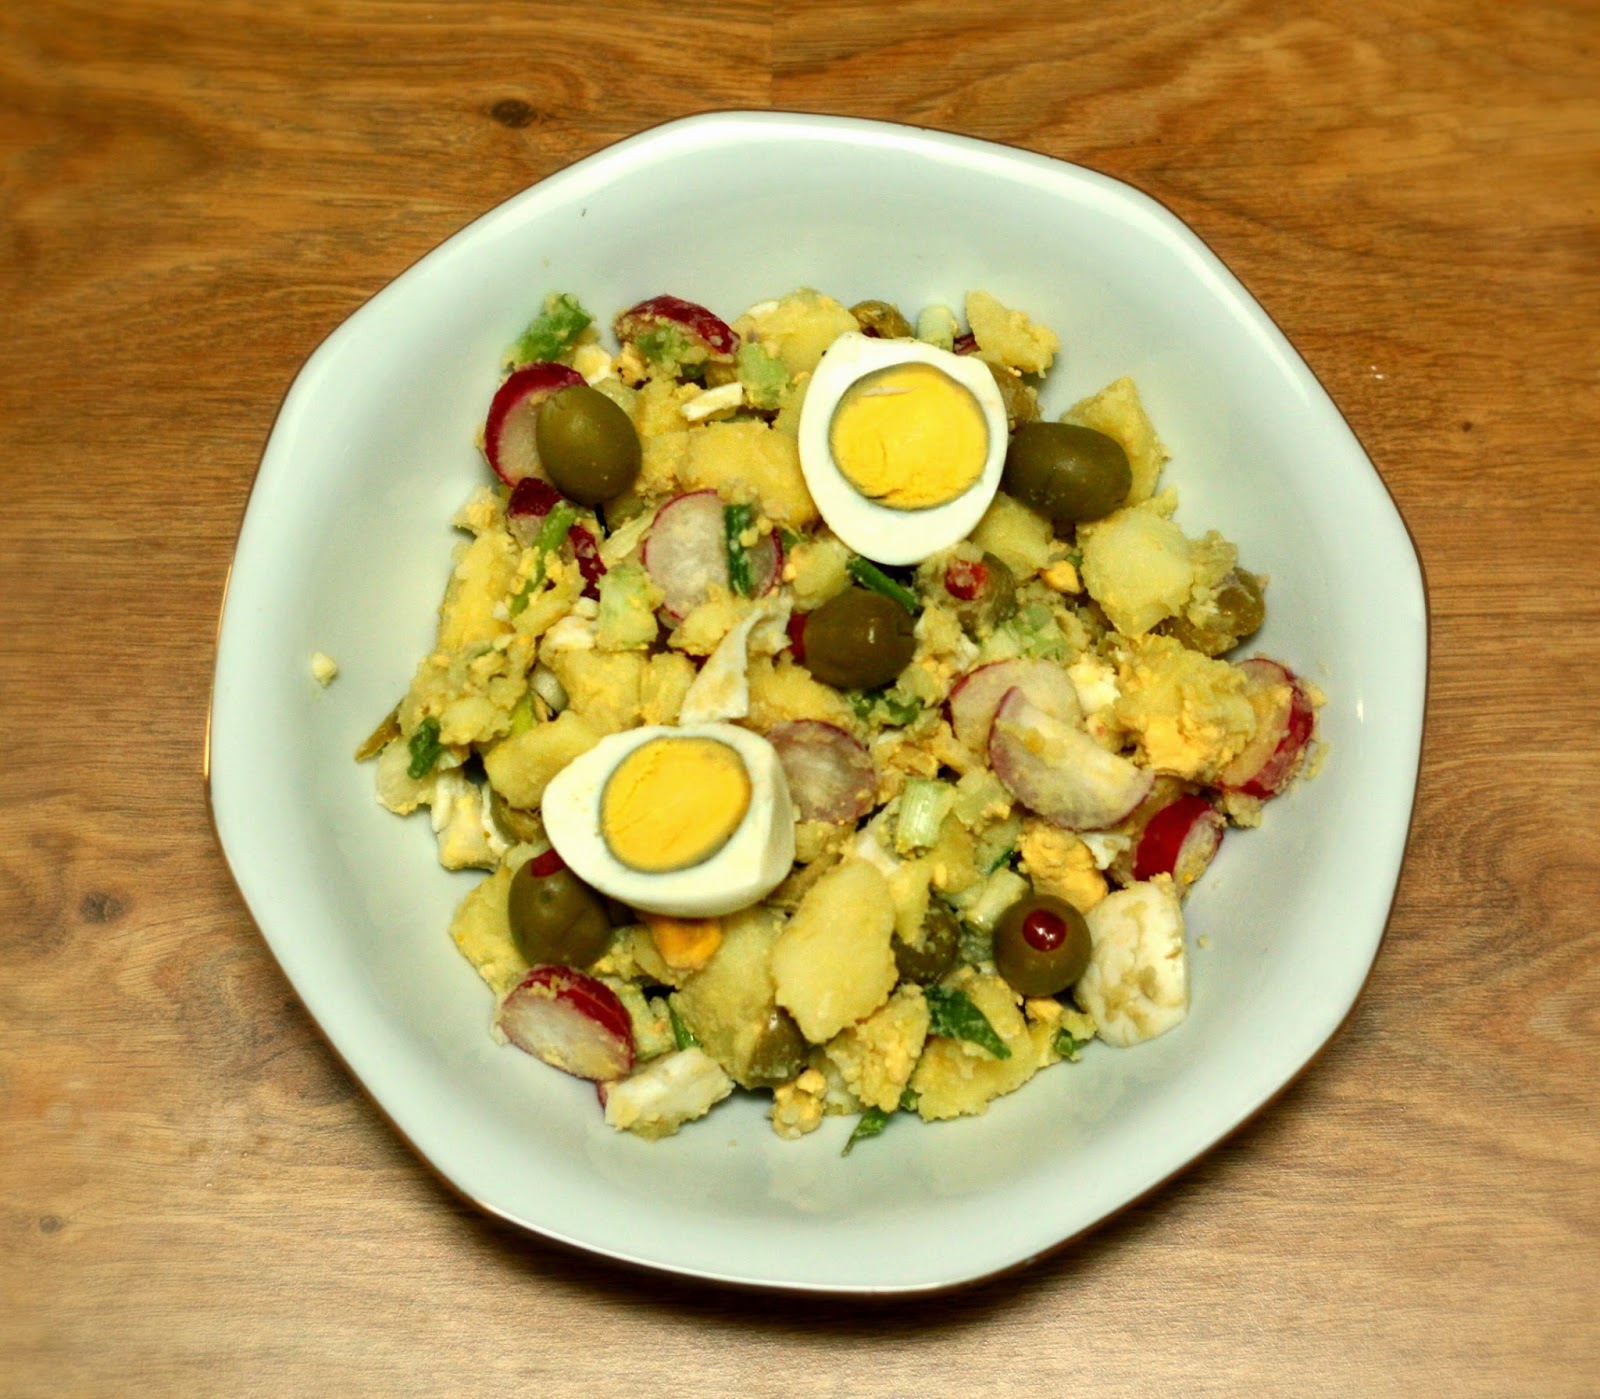 #Vegetarian Potato #Salad #Recipe